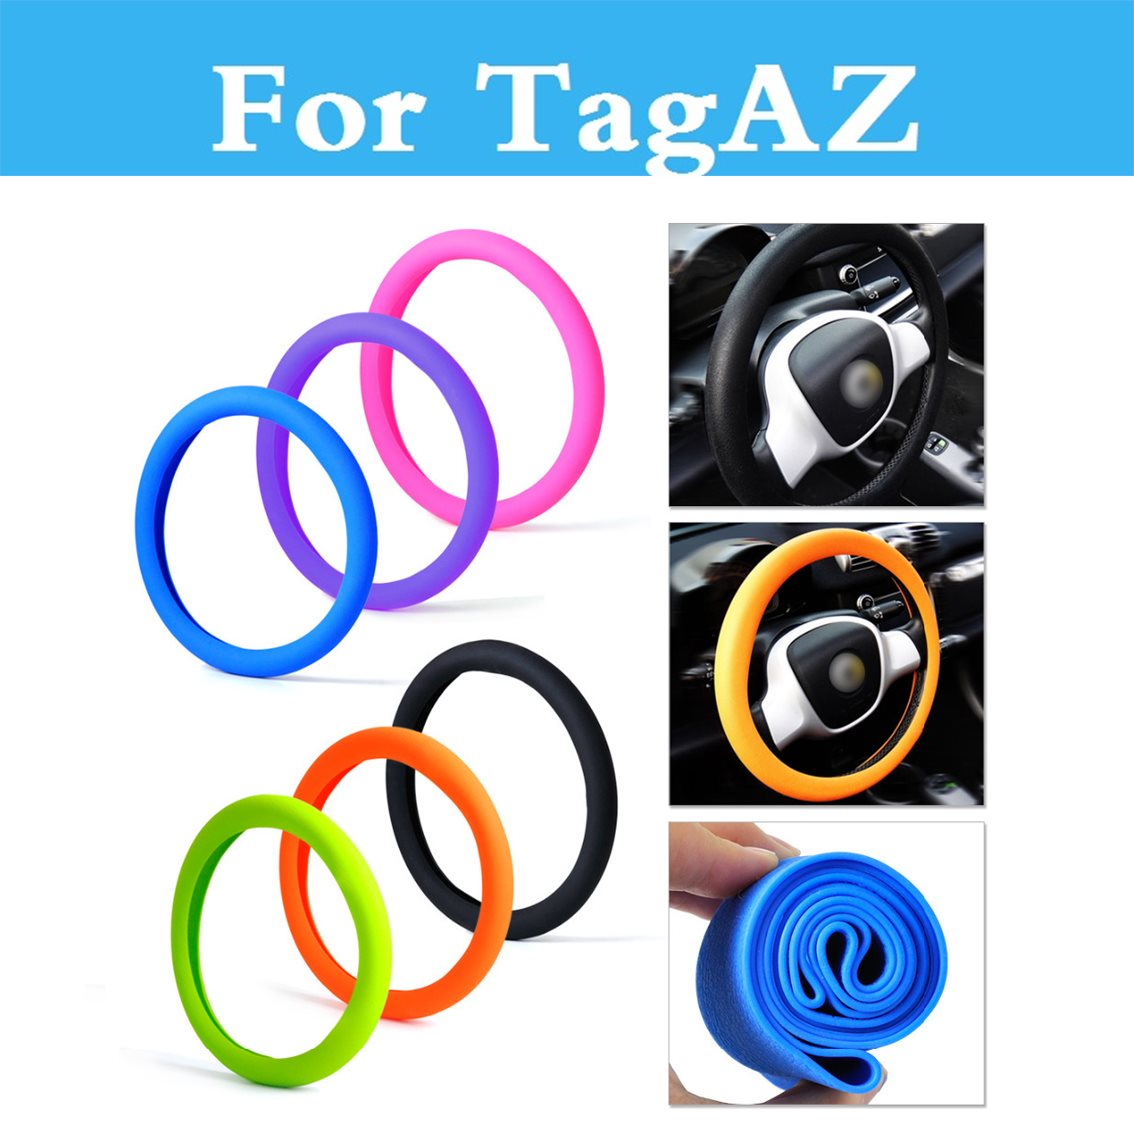 Car Auto Silicone Steering Wheel Glove Cover Steering Covers Accessories For TagAZ C10 C190 C-30 Road Partner Tager Vega Aquila